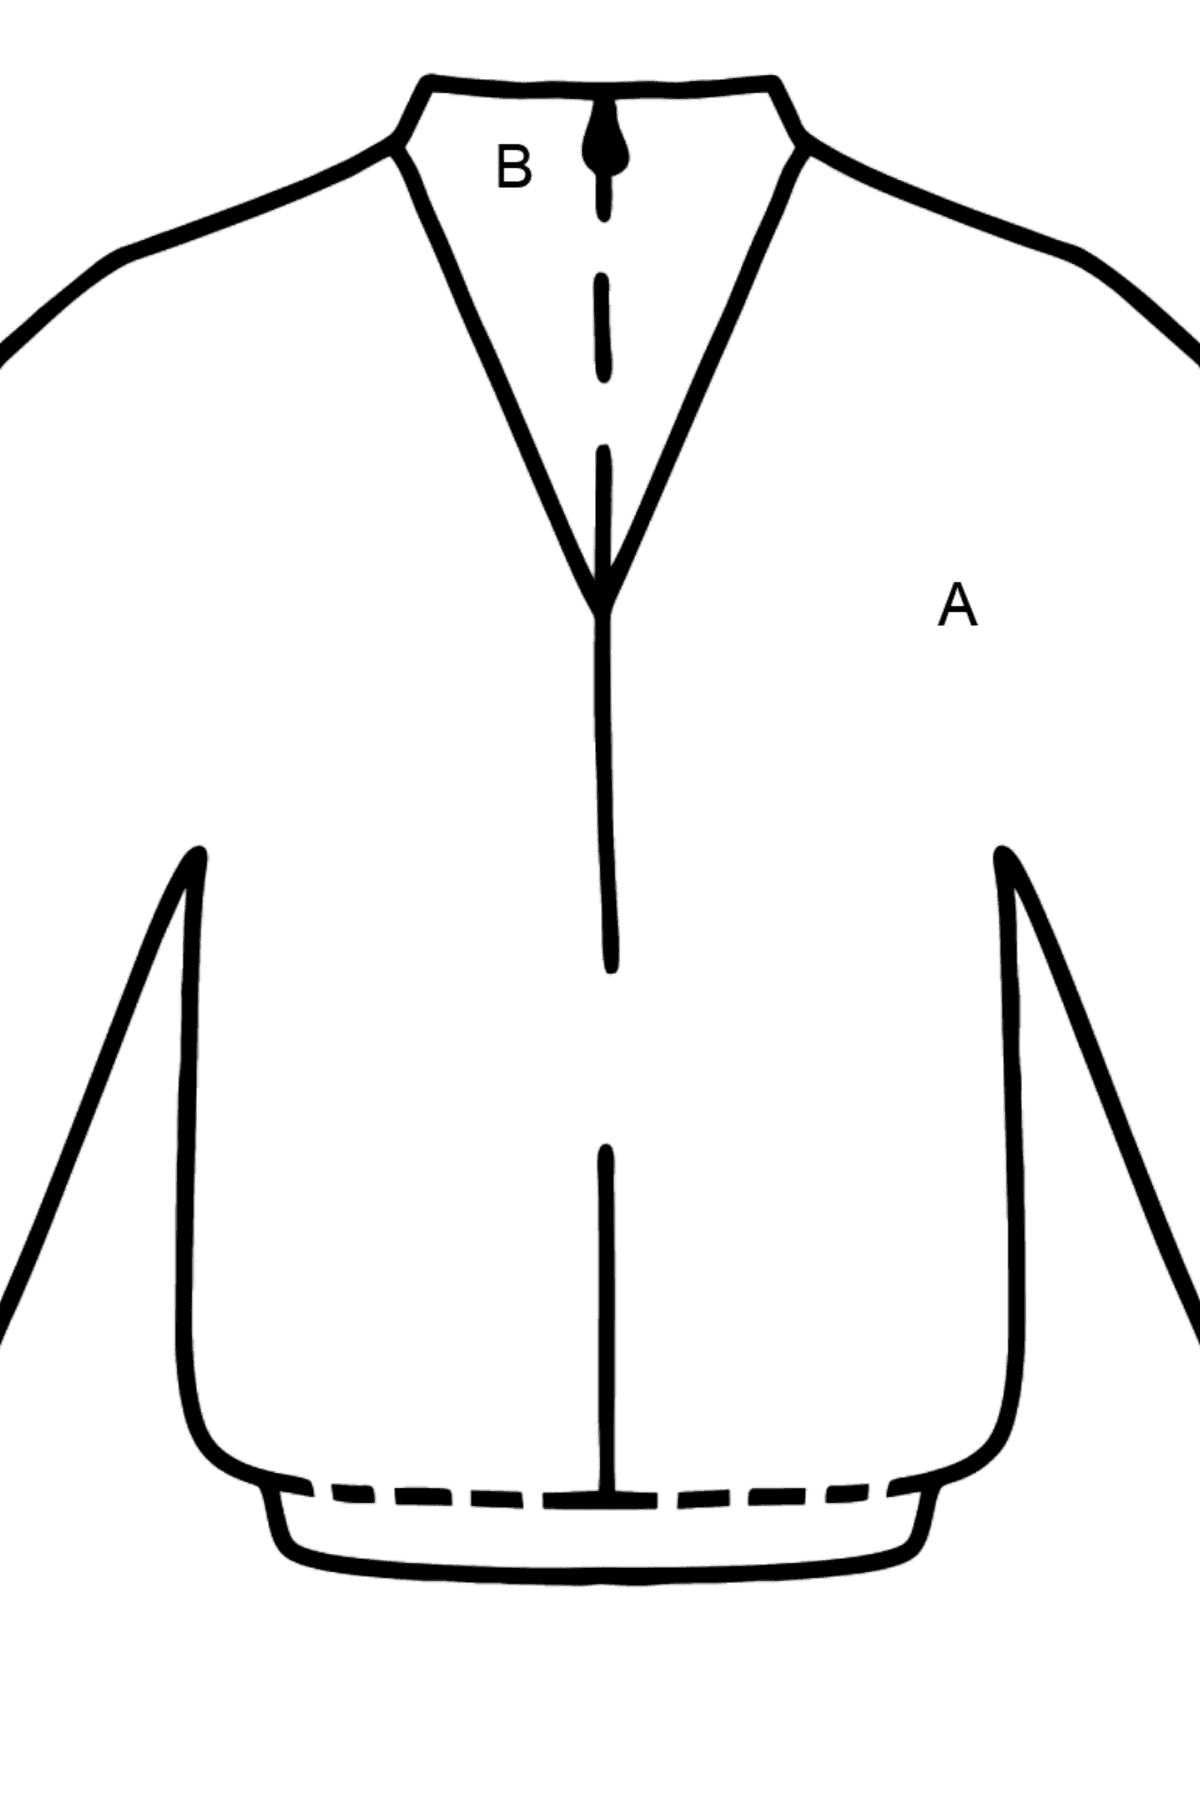 Blue Jacket coloring page - Coloring by Letters for Kids